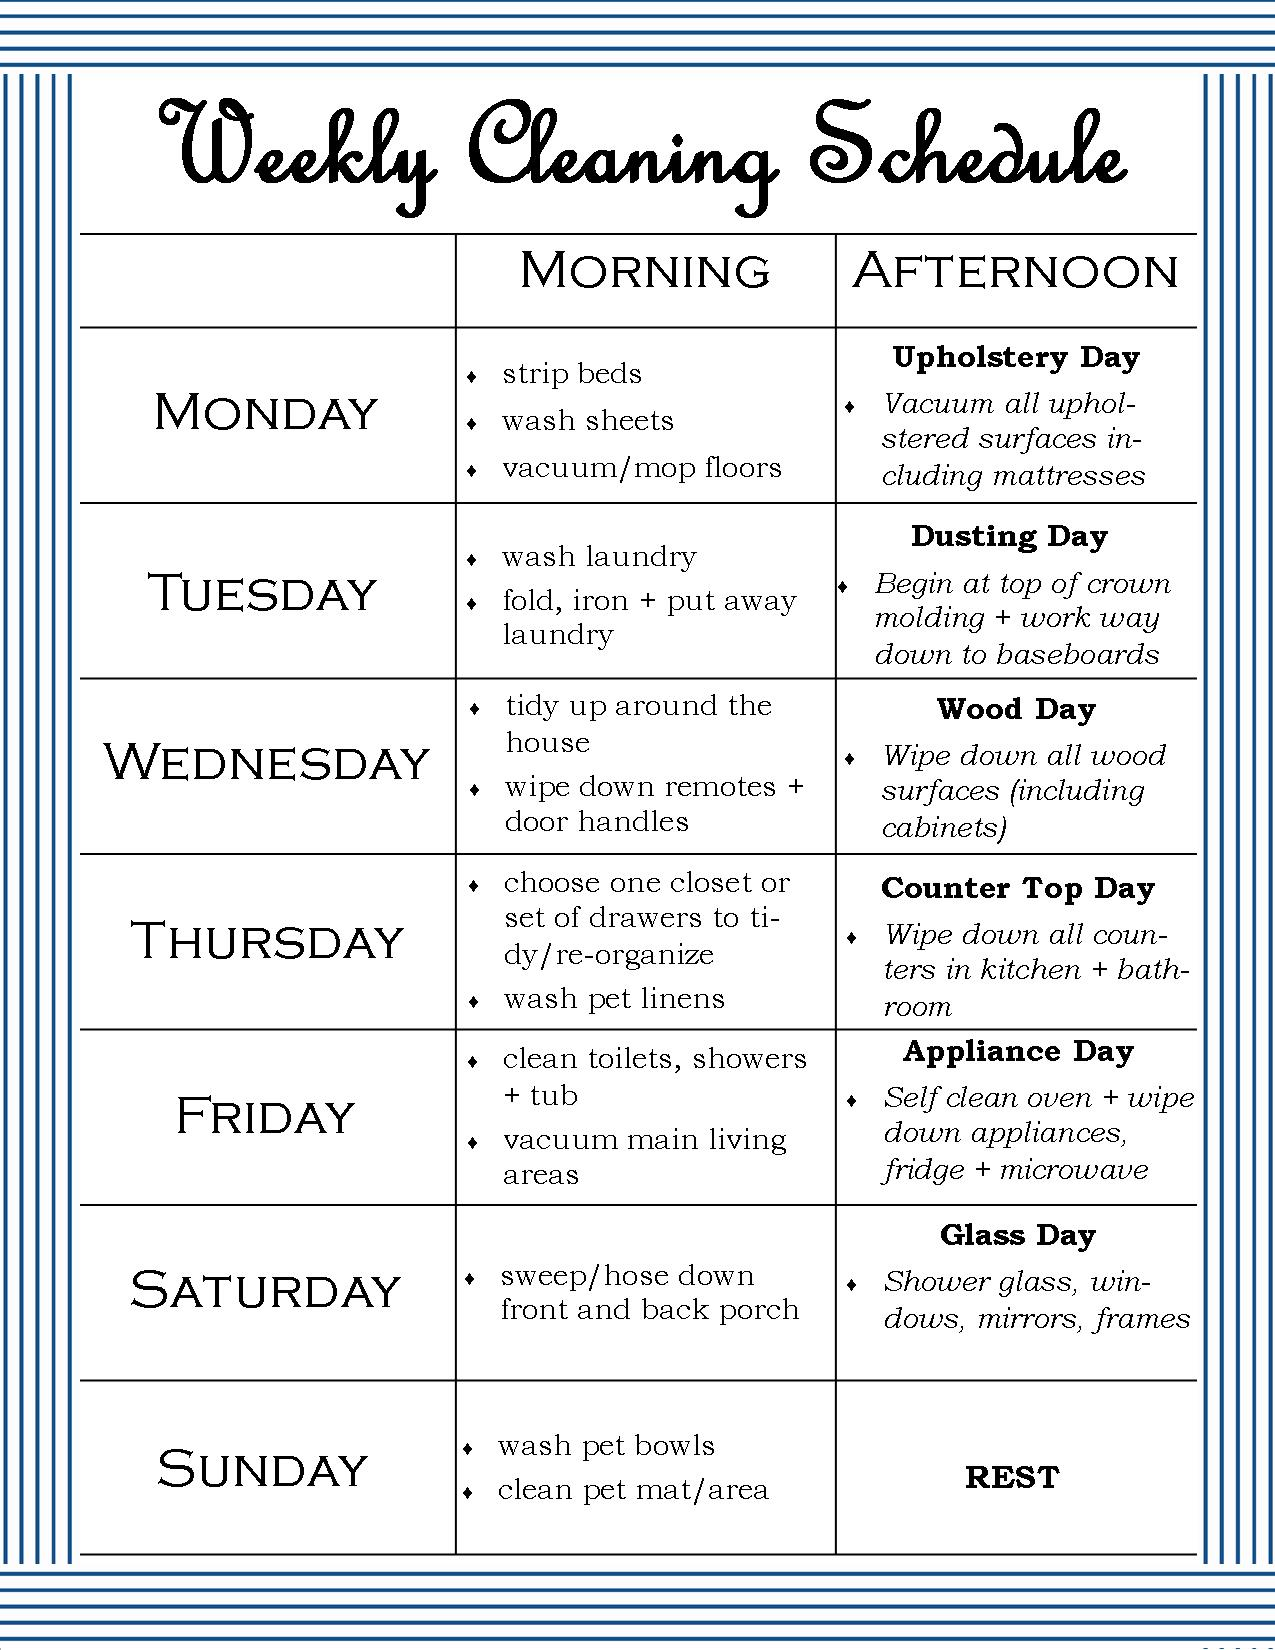 The Weekly Cleaning Schedule